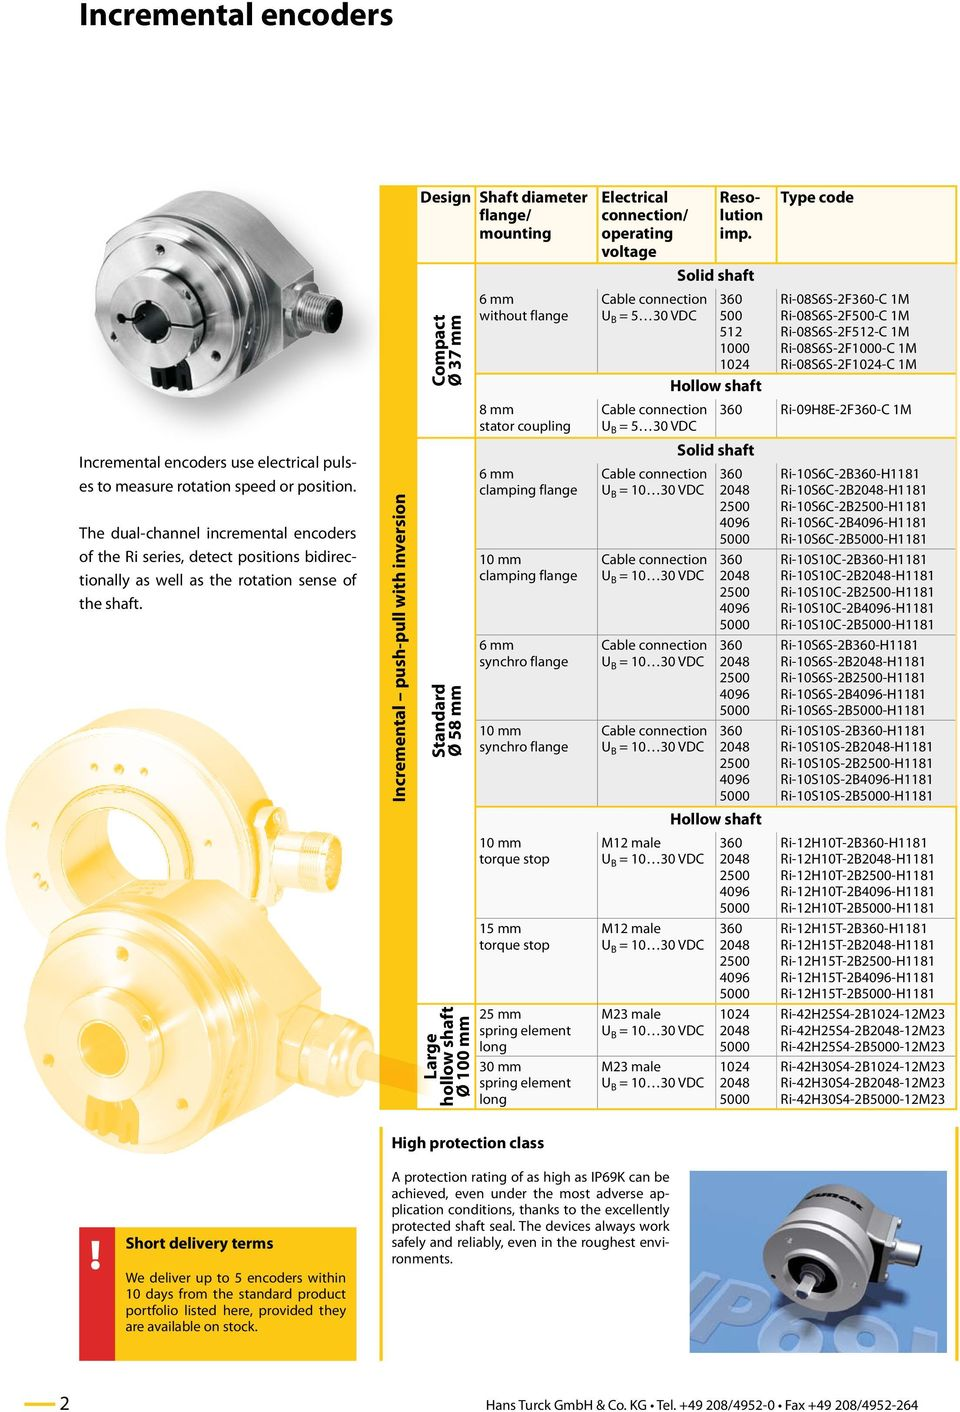 Incremental push-pull with inversion Design Shaft diameter flange/ mounting Compact Ø 37 mm Standard Ø 58 mm Large hollow shaft Ø 100 mm without flange 8 mm torque stop 15 mm torque stop 25 mm spring